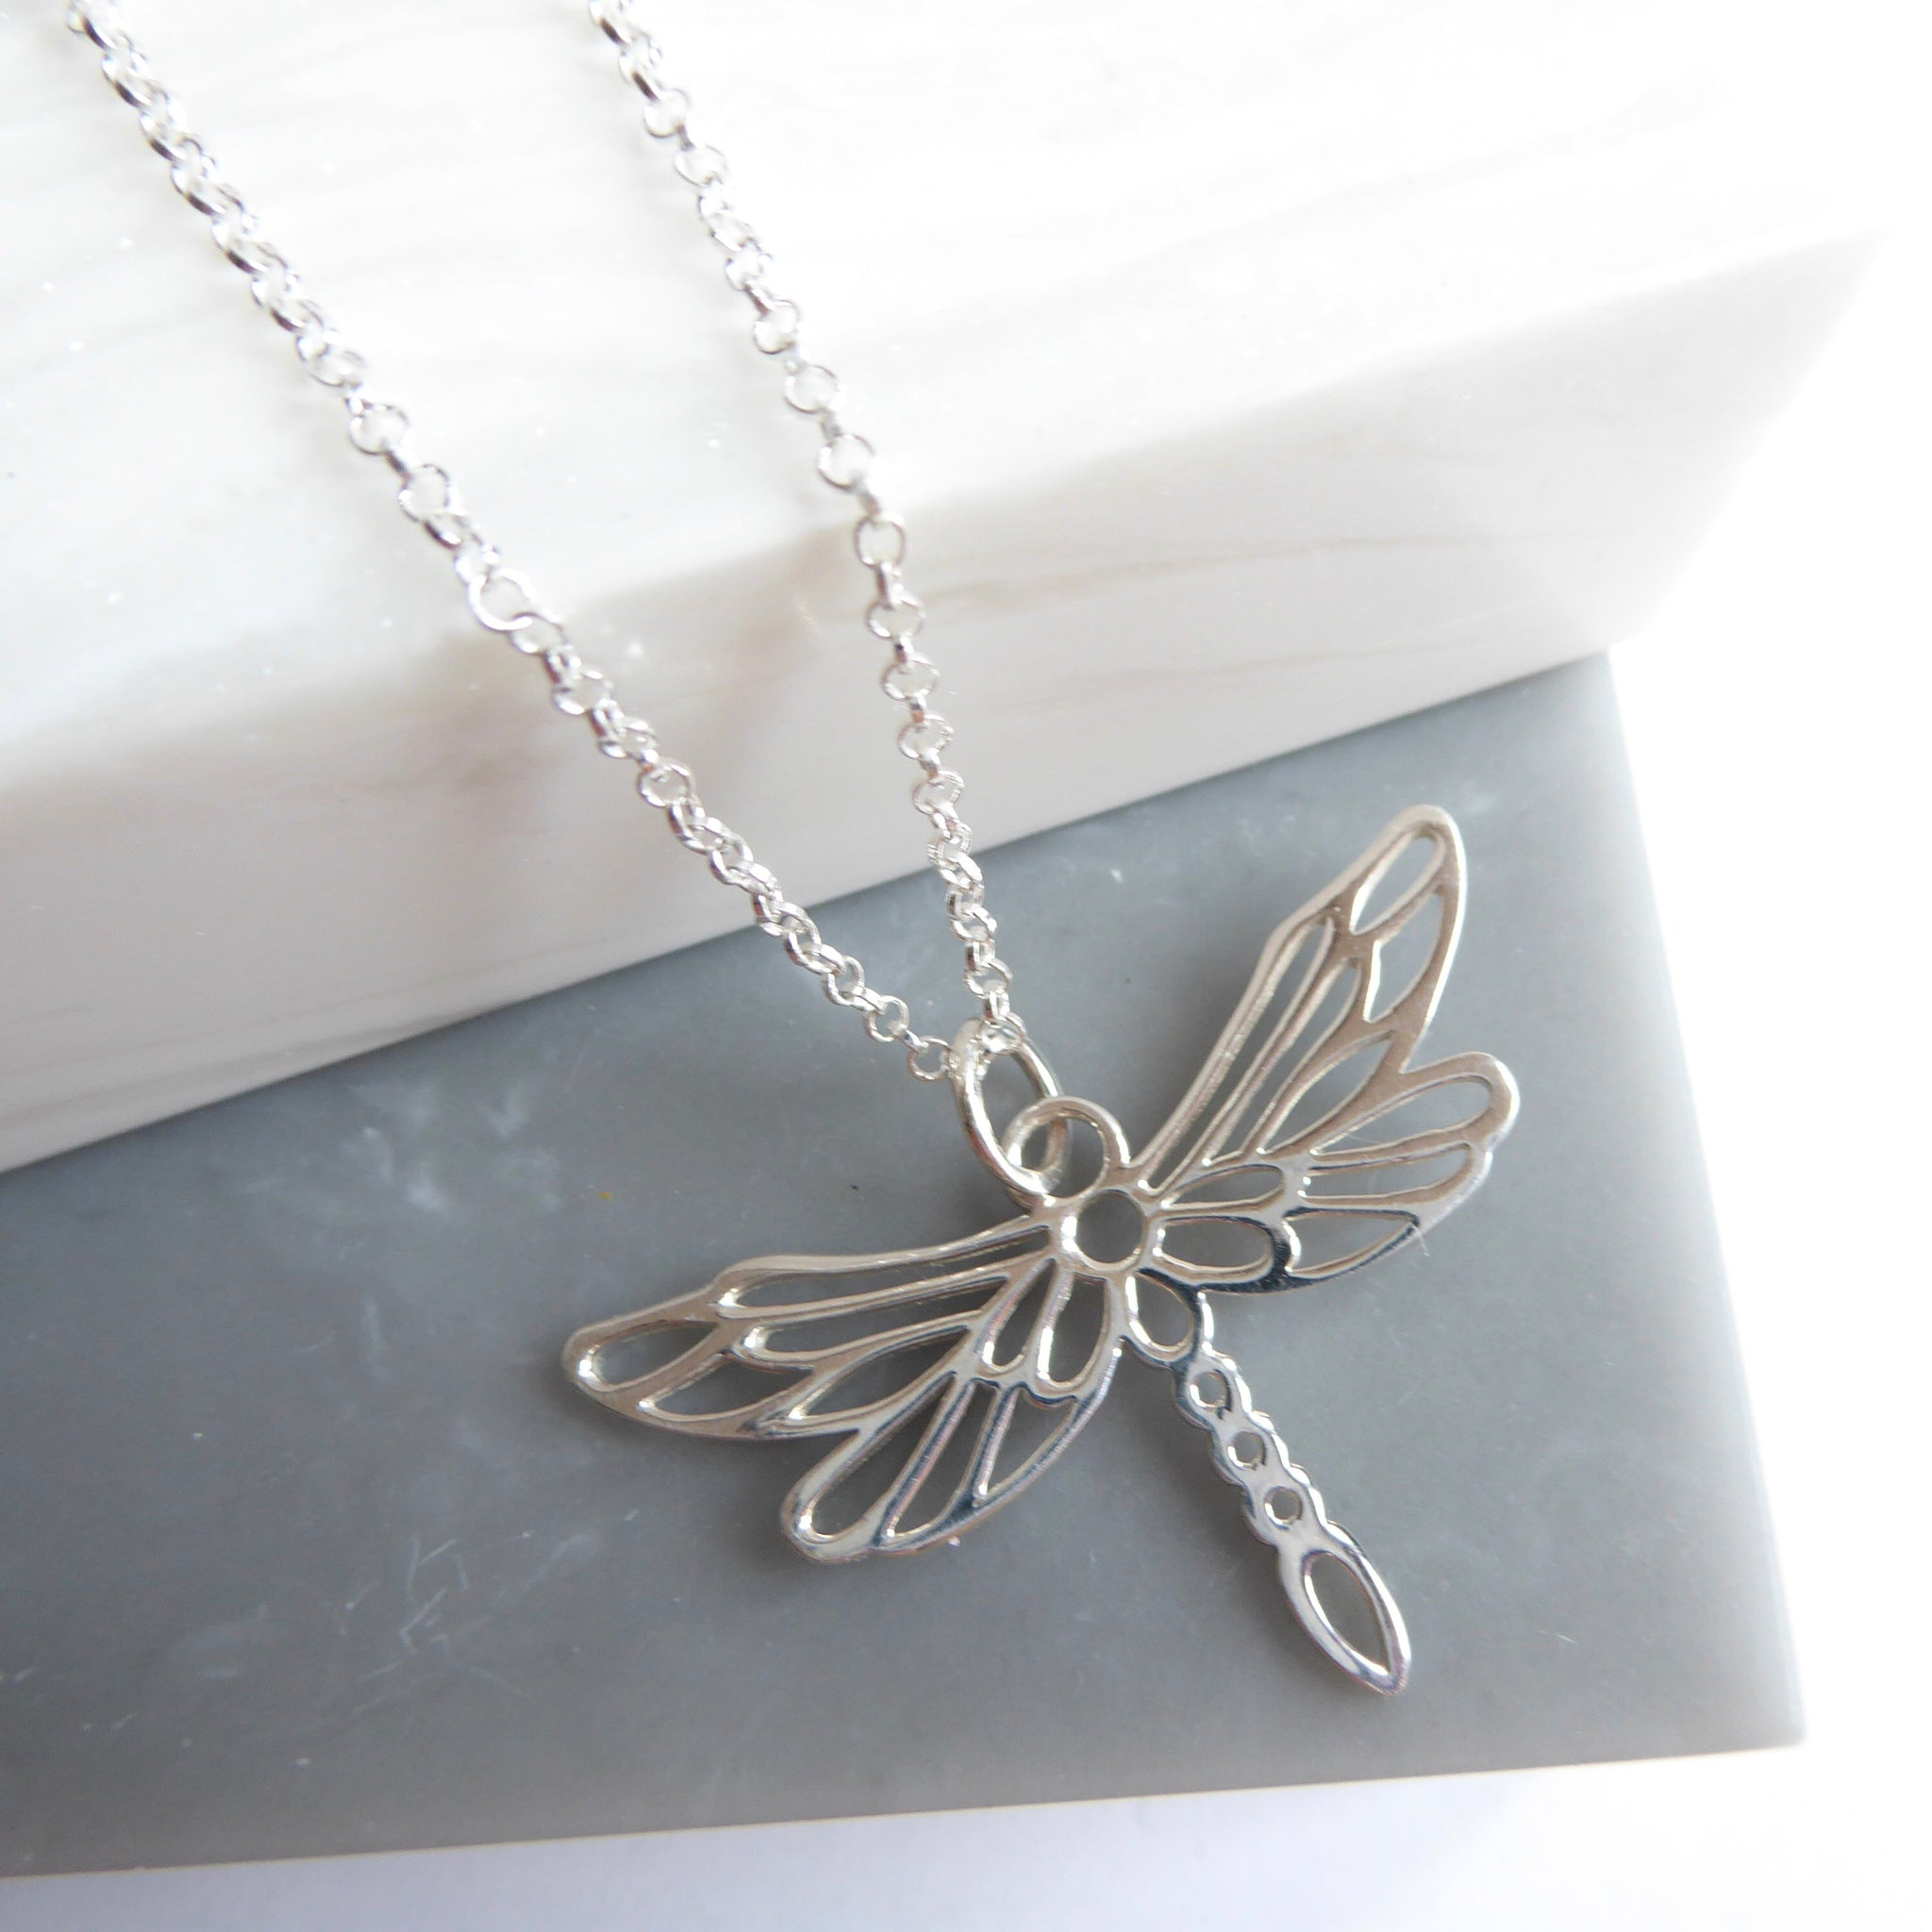 november jewellery handy birthstone necklaces dragonfly rebecca available product topaz pendant colours